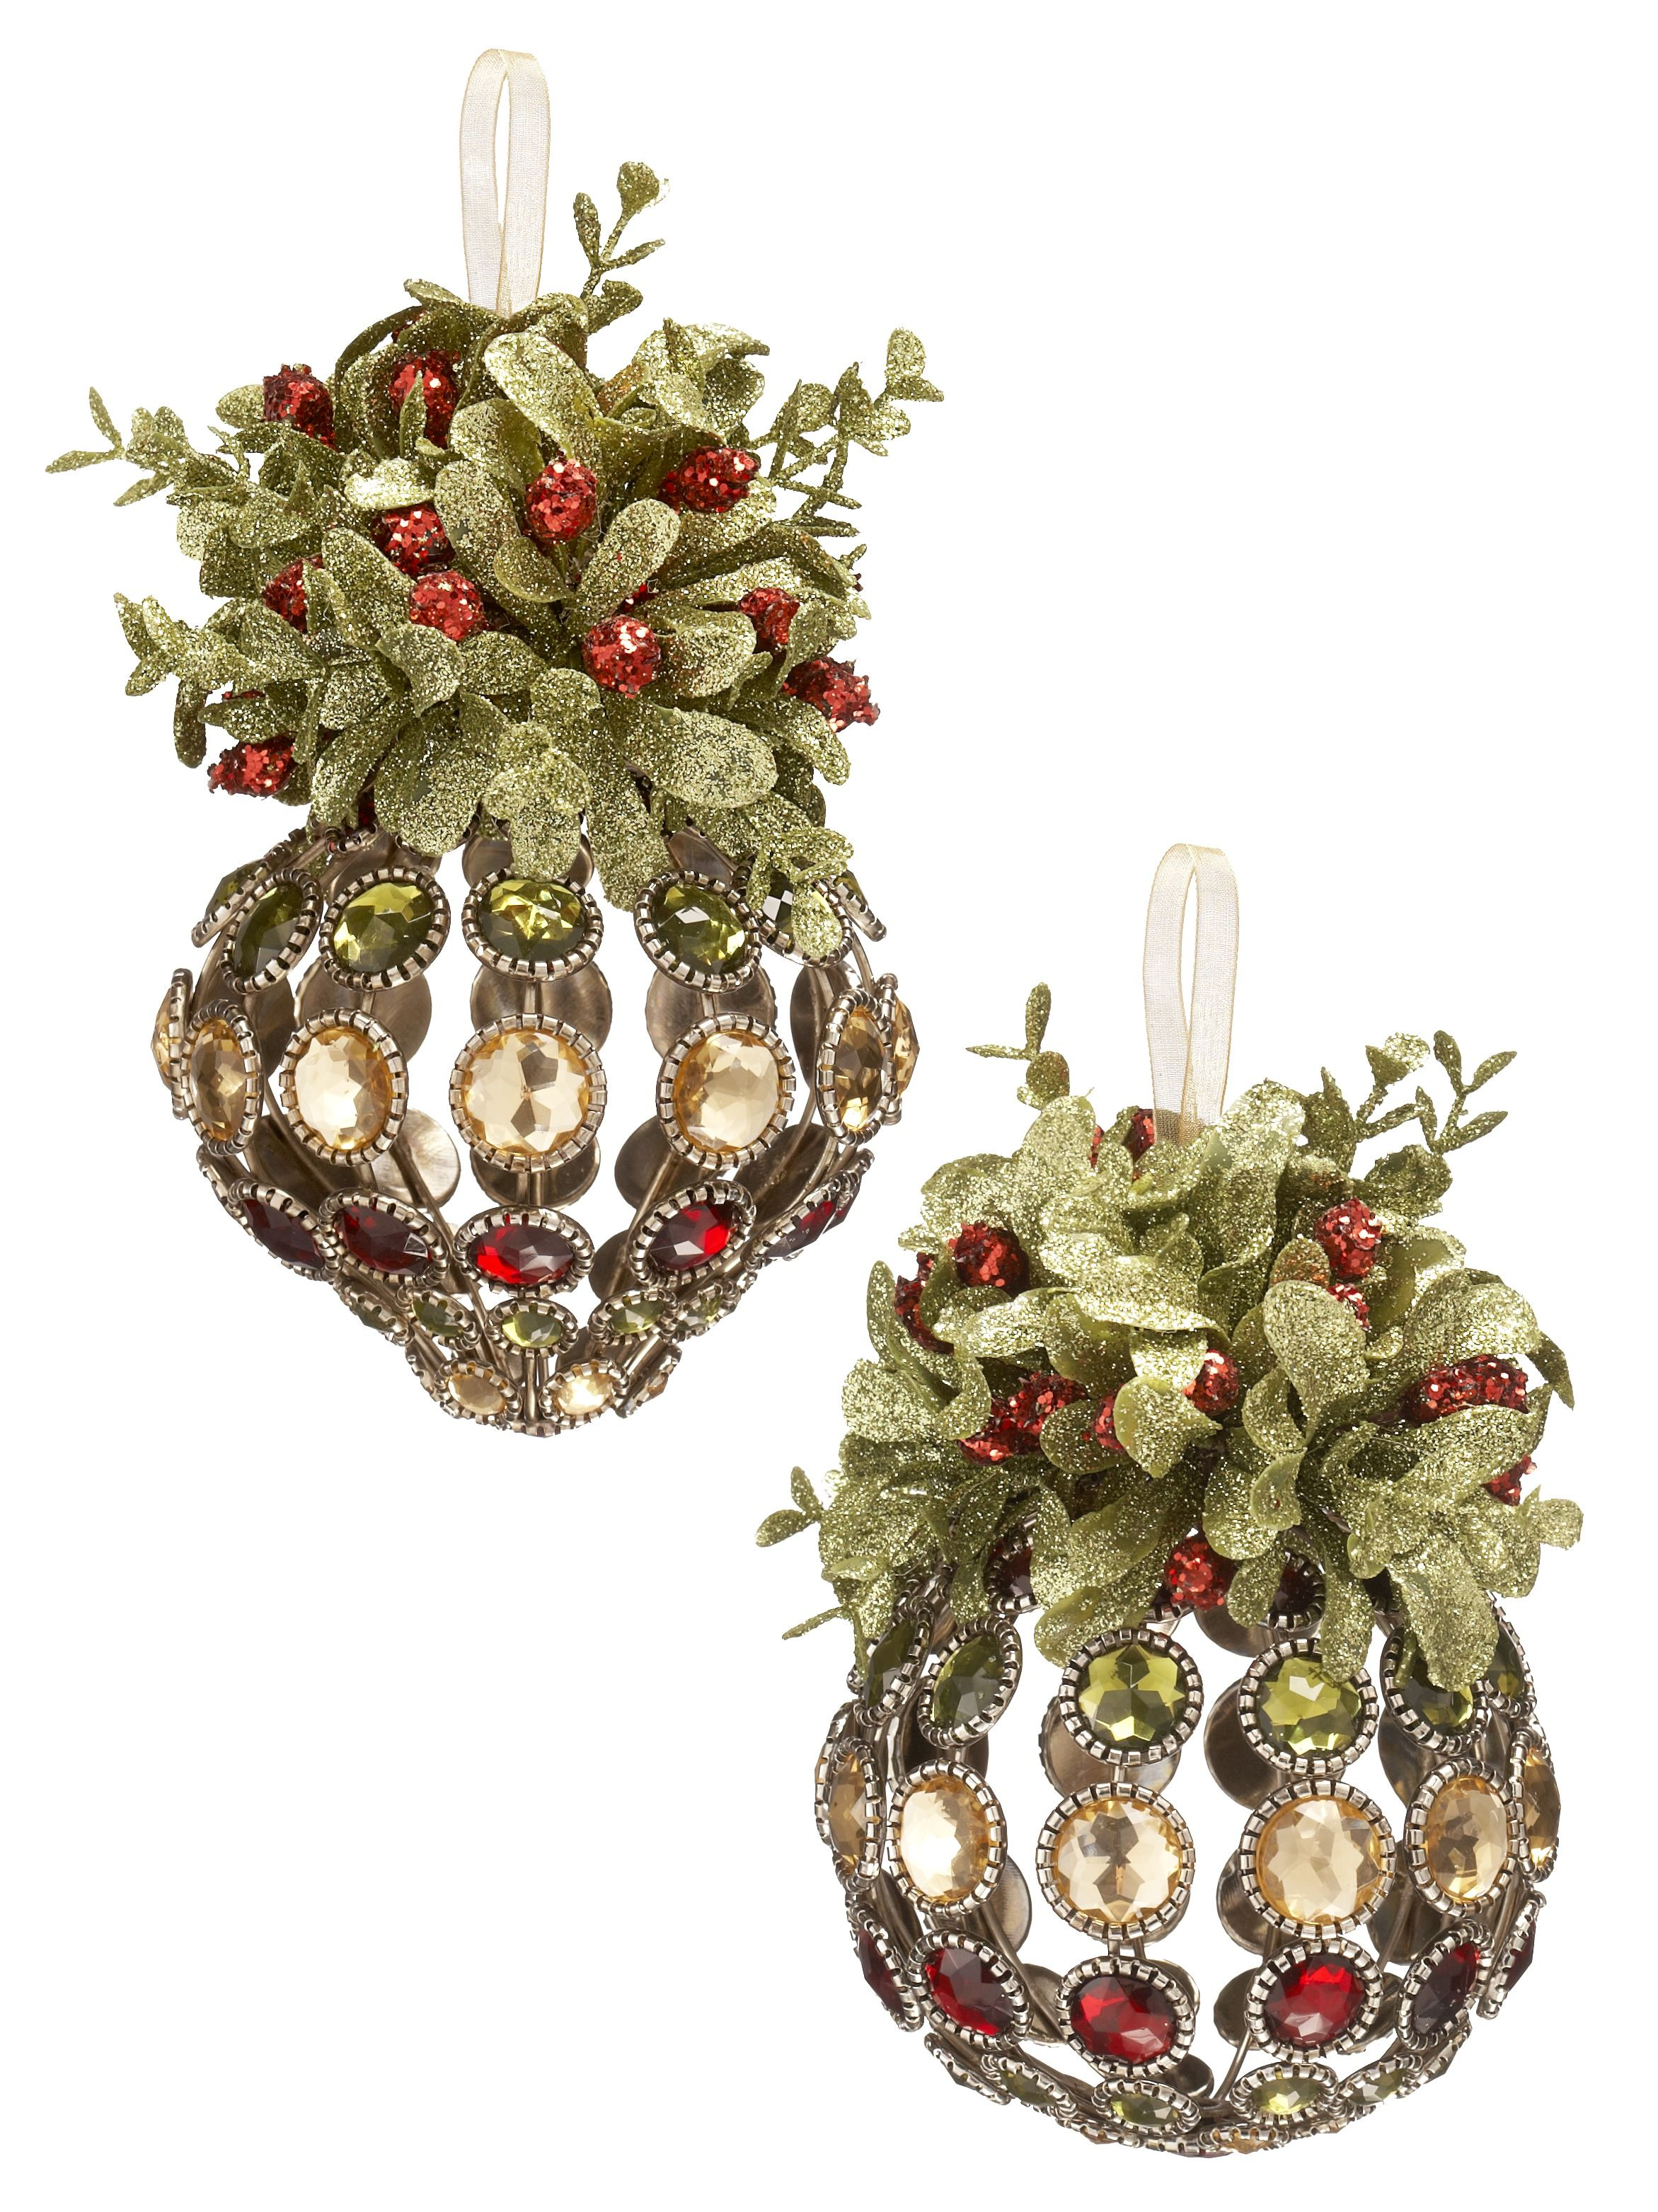 Vintage Looking Jewelled Ornament With Classic Mistletoe Topper Is Perfect For Gifting Wholesale Home Decor Wholesale Gifts Garden Decor